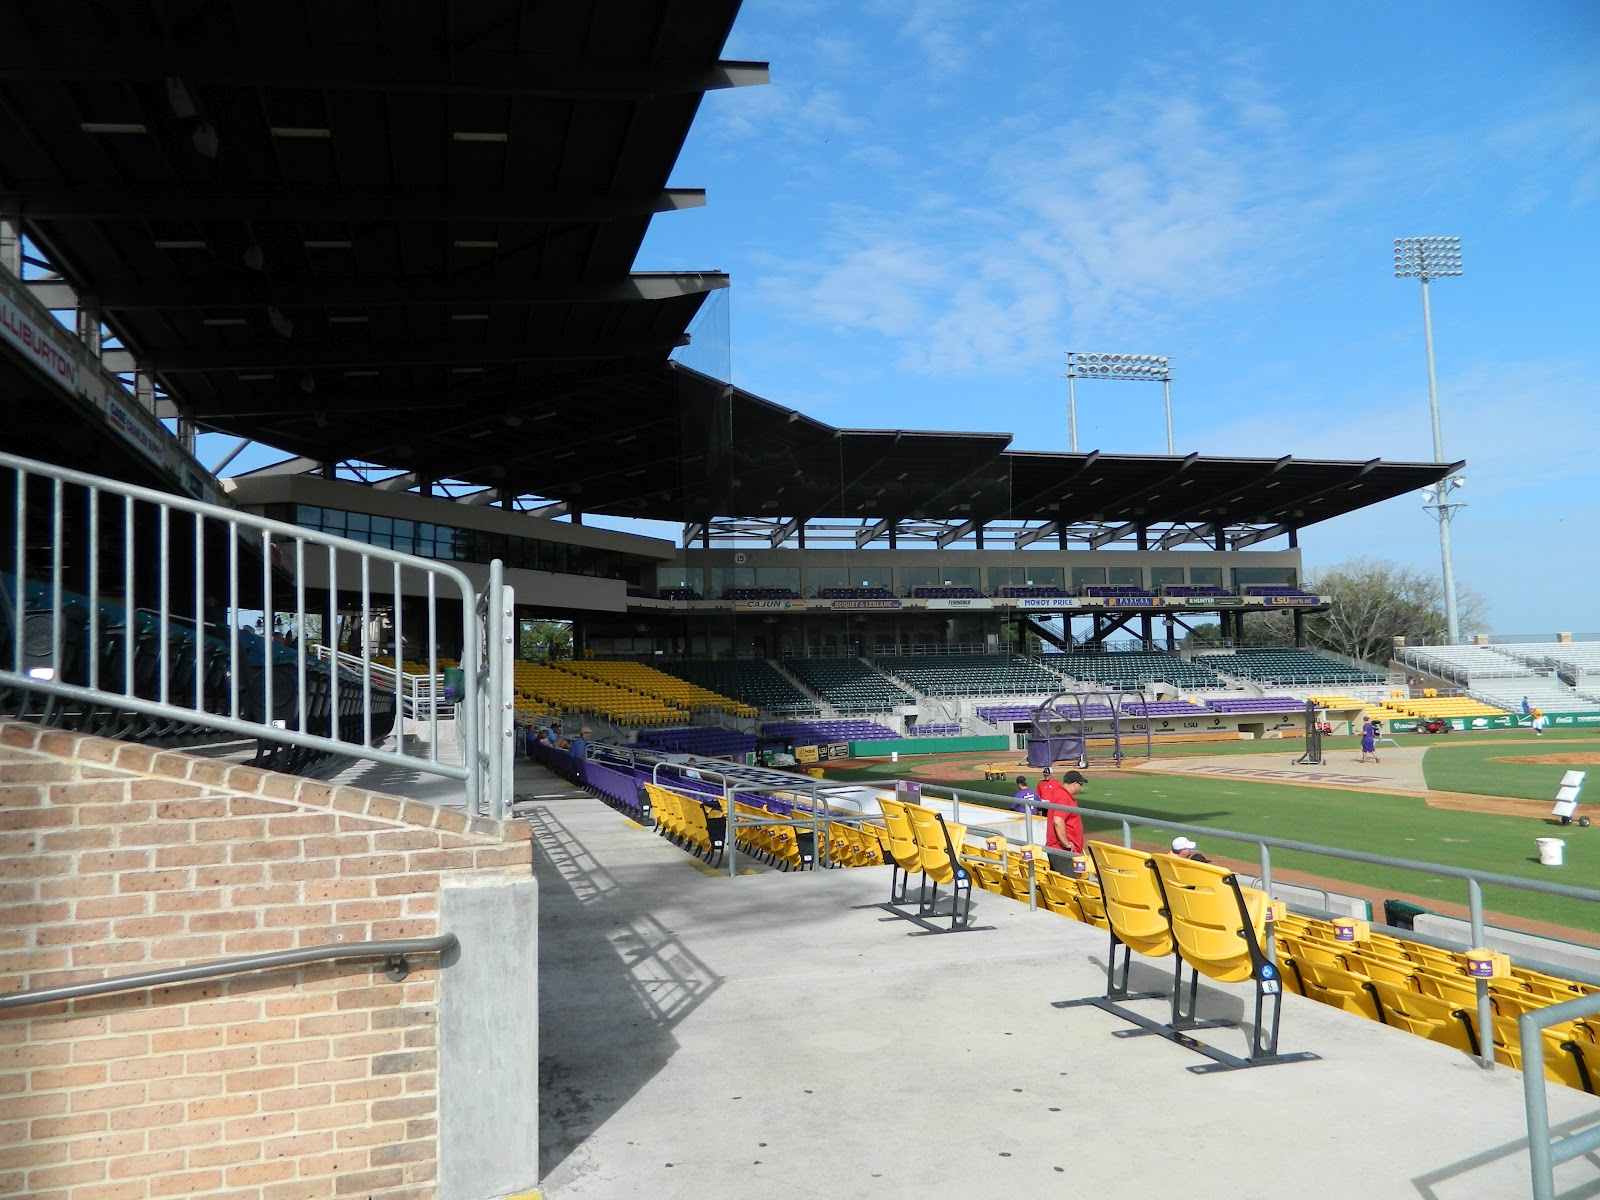 Just Down The Street From Tiger Stadium I Checked Out LSUs Baseball Facility Alex Box And Its Nicer Than A Lot Of Minor League Stadiums Ive